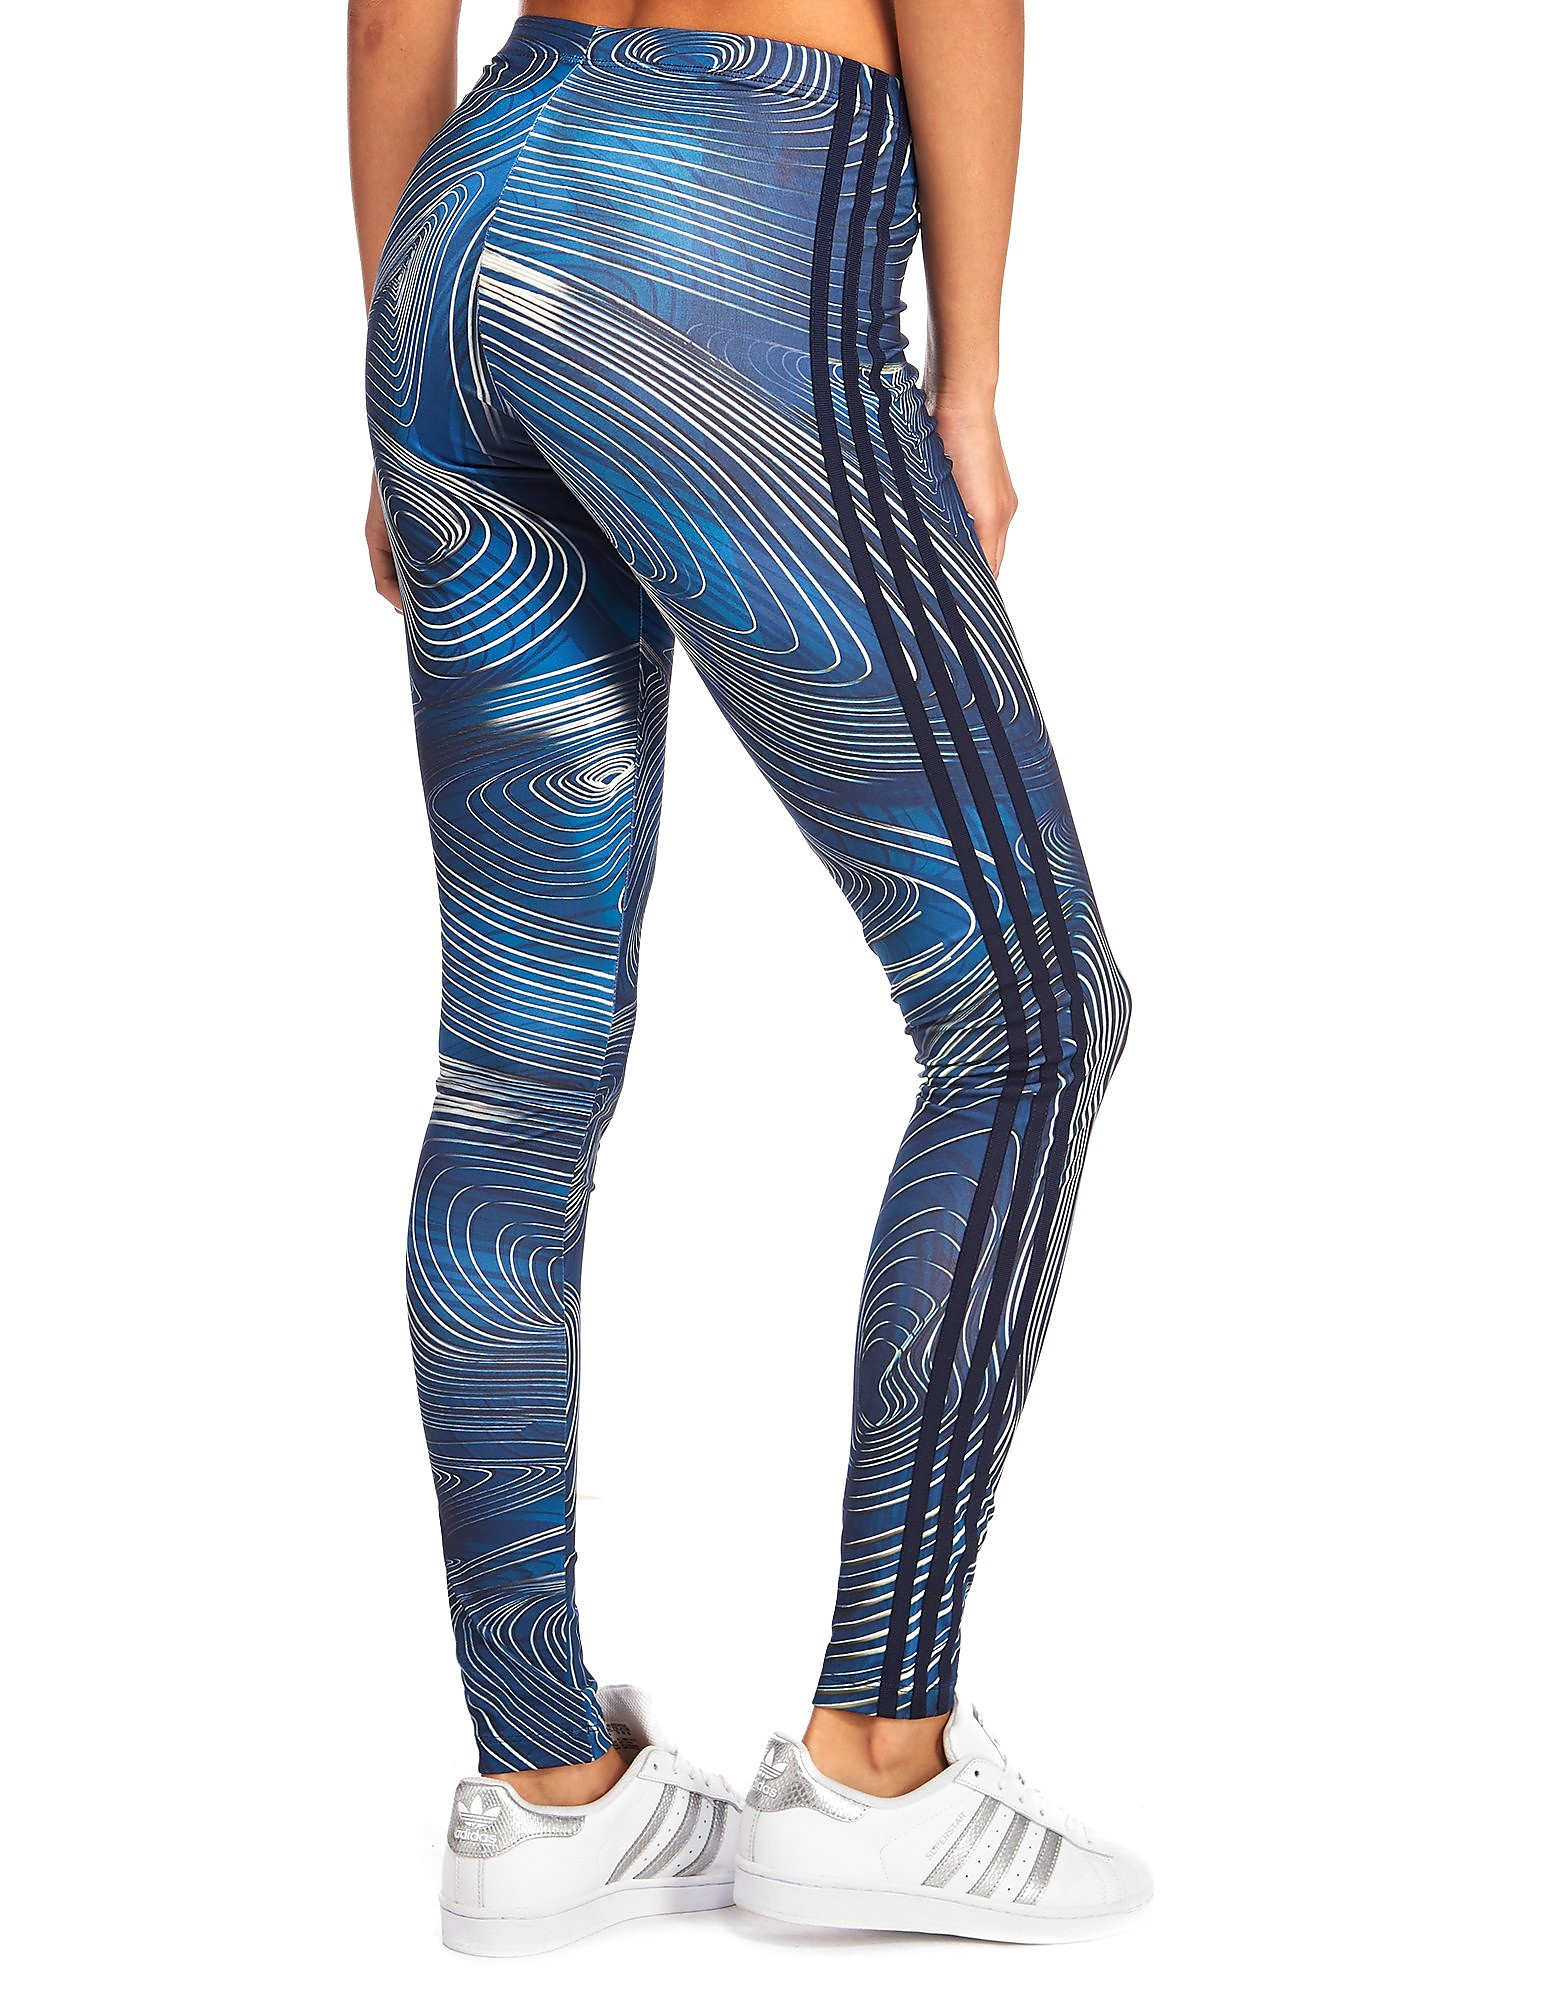 adidas Originals Geology Leggings